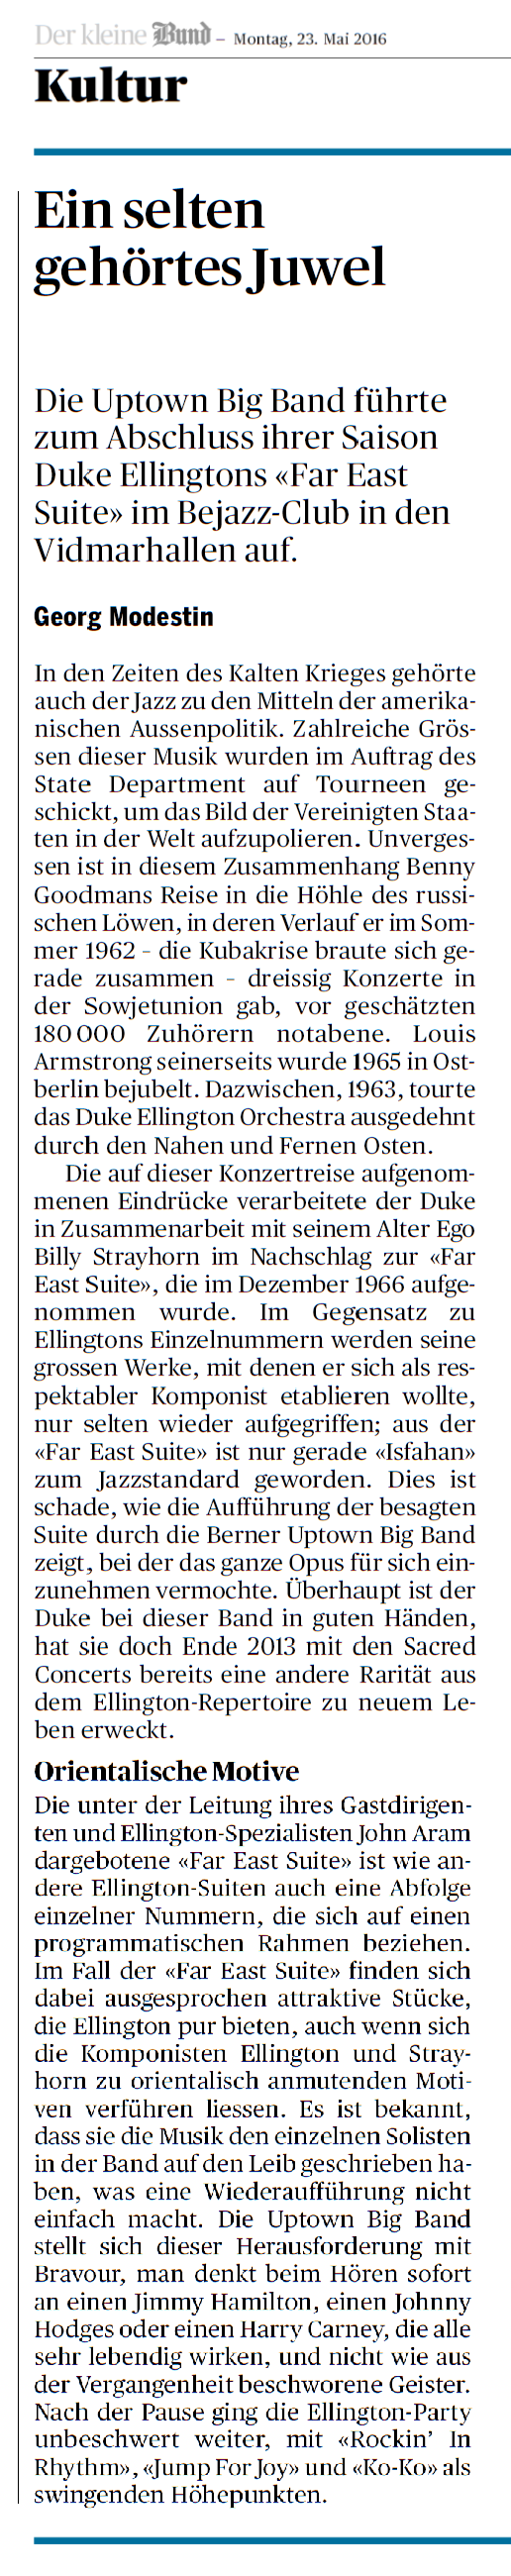 Ein selten gehörtes Juwel: Die Uptown Big Band führte zum Abschluss ihrer Saison Duke Ellingtons «Far East Suite» im Bejazz-Club in den Vidmarhallen auf. Georg Modestin, der Bund, 23. Mai 2016